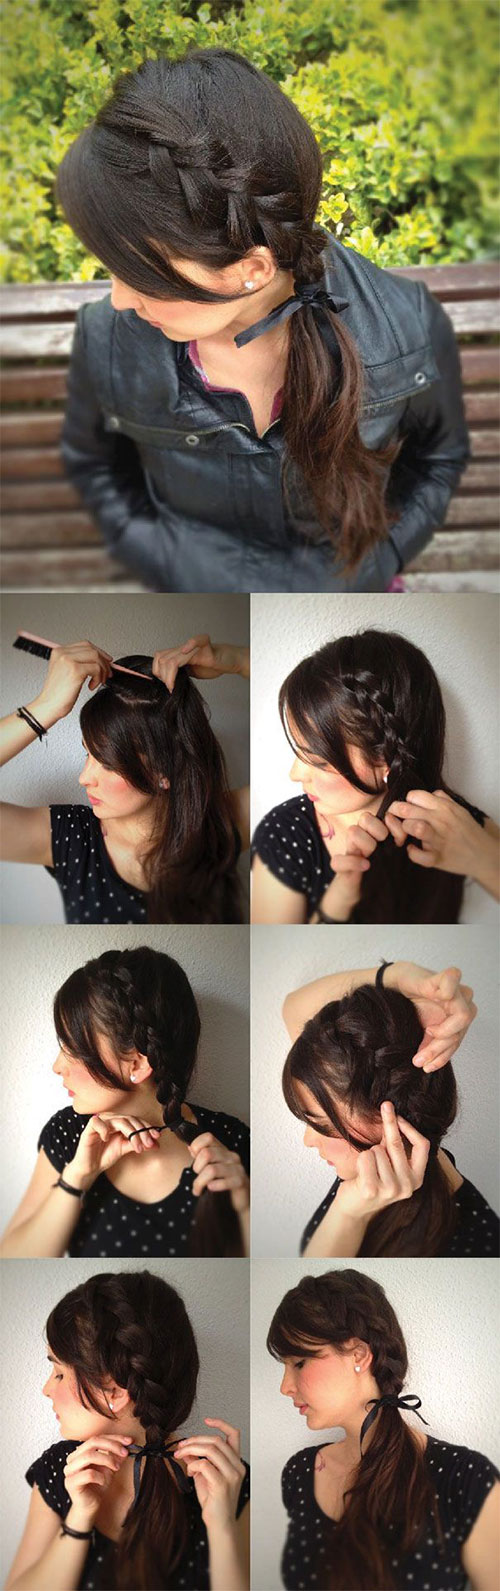 Simple-Step-By-Step-Winter-Hairstyle-Tutorials-For-Beginners-Learners-2016-8